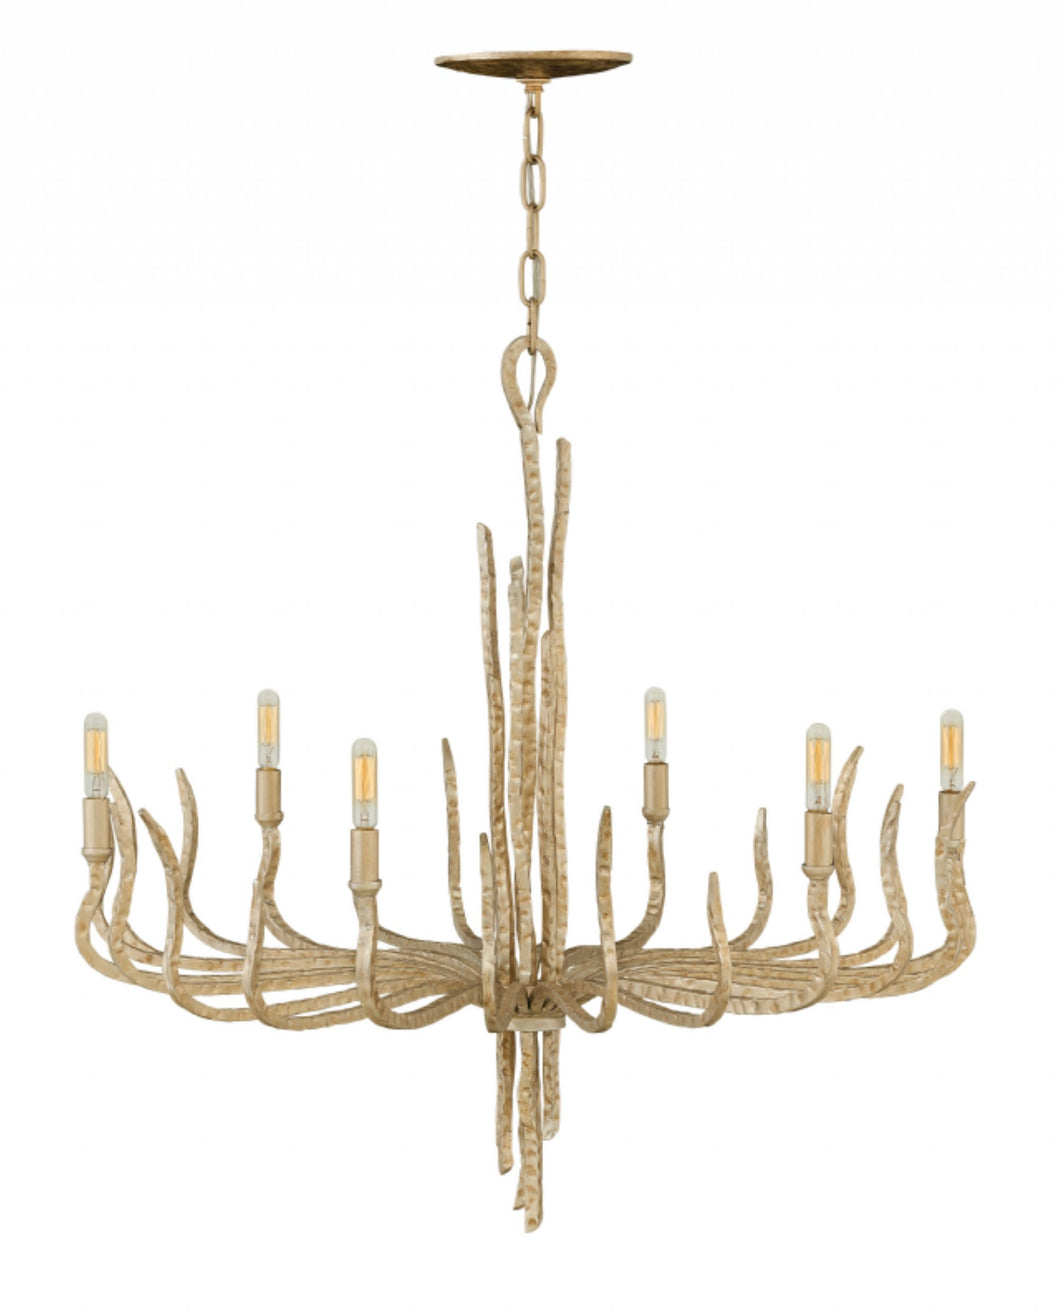 Champagne Gold Single Tier Chandelier